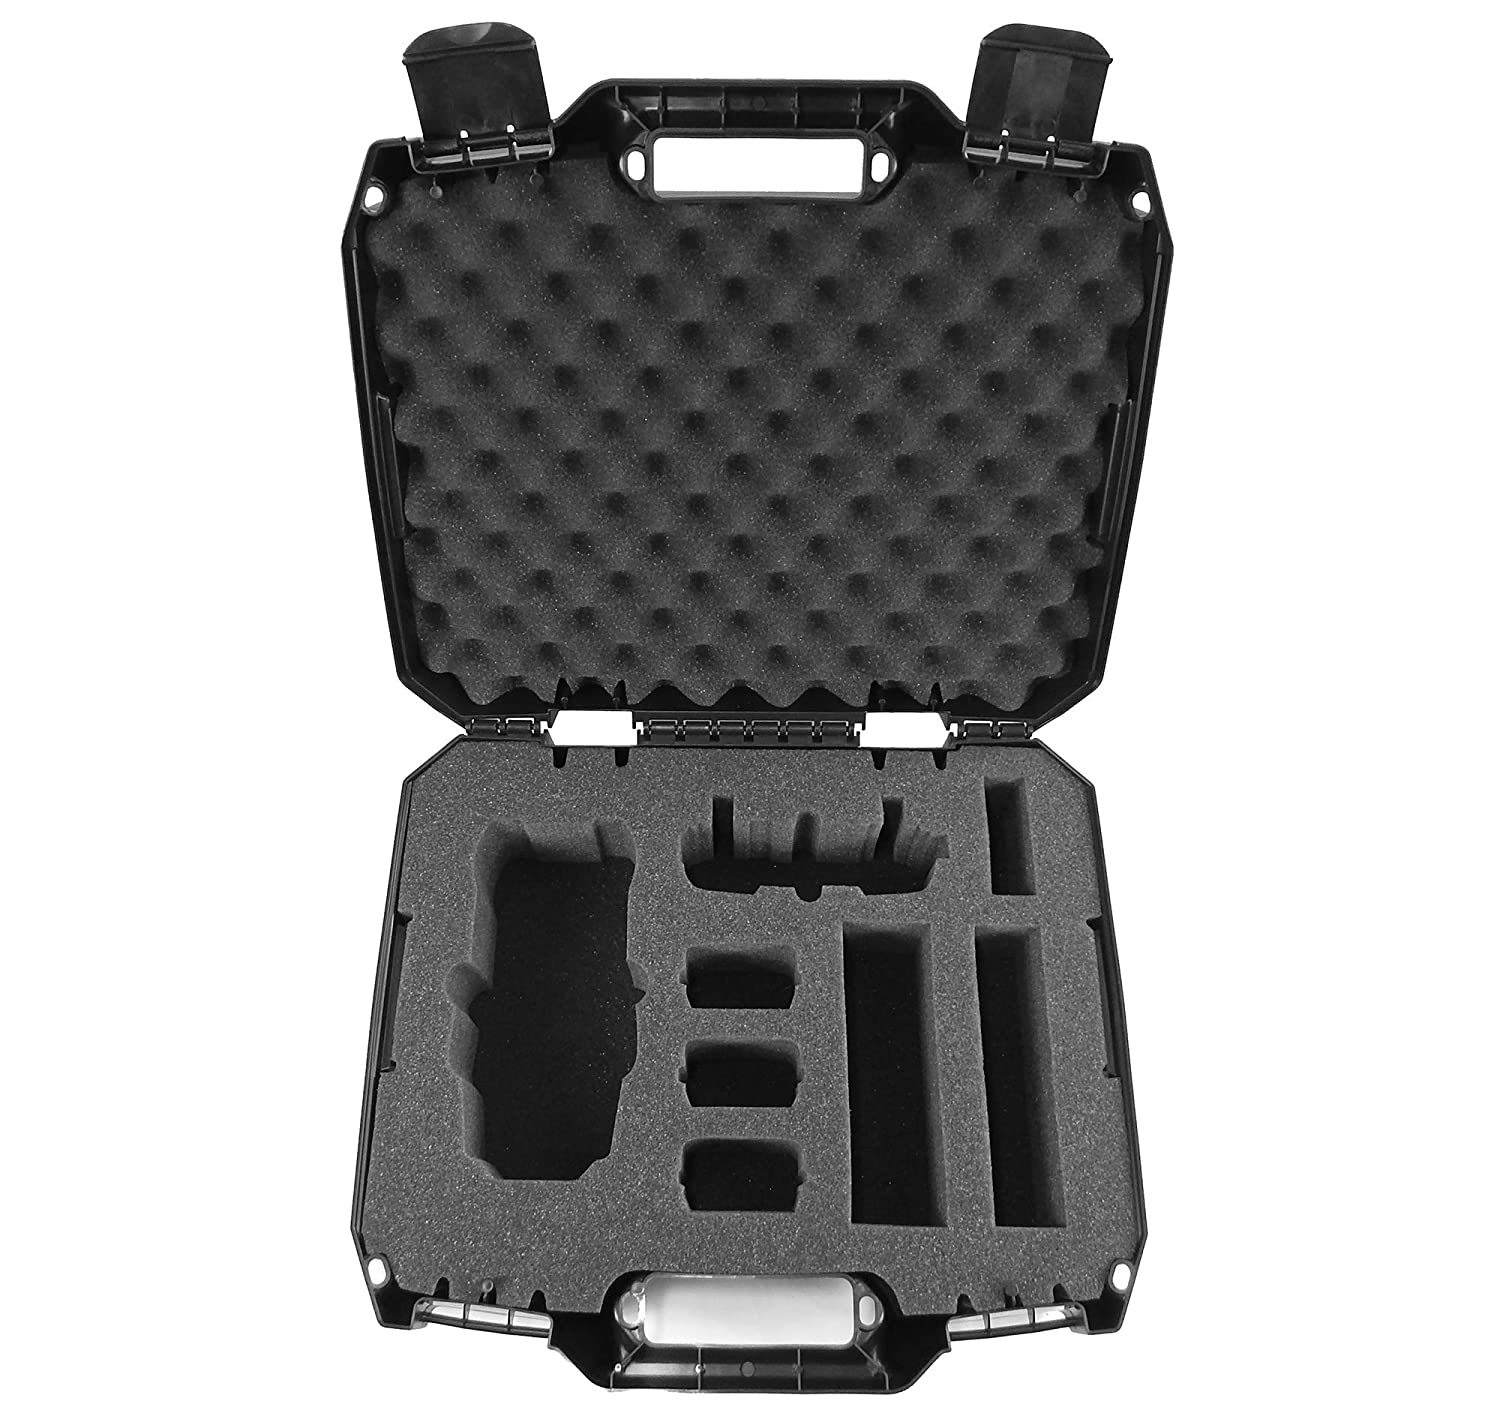 DRONESAFE Rugged Mini Drone Carry Case Organizer With Customizable Foam – Protect DJI Mavic Pro Foldable Drone Combo and Accessories Such as Remote Control Extra Batteries Propellers and More